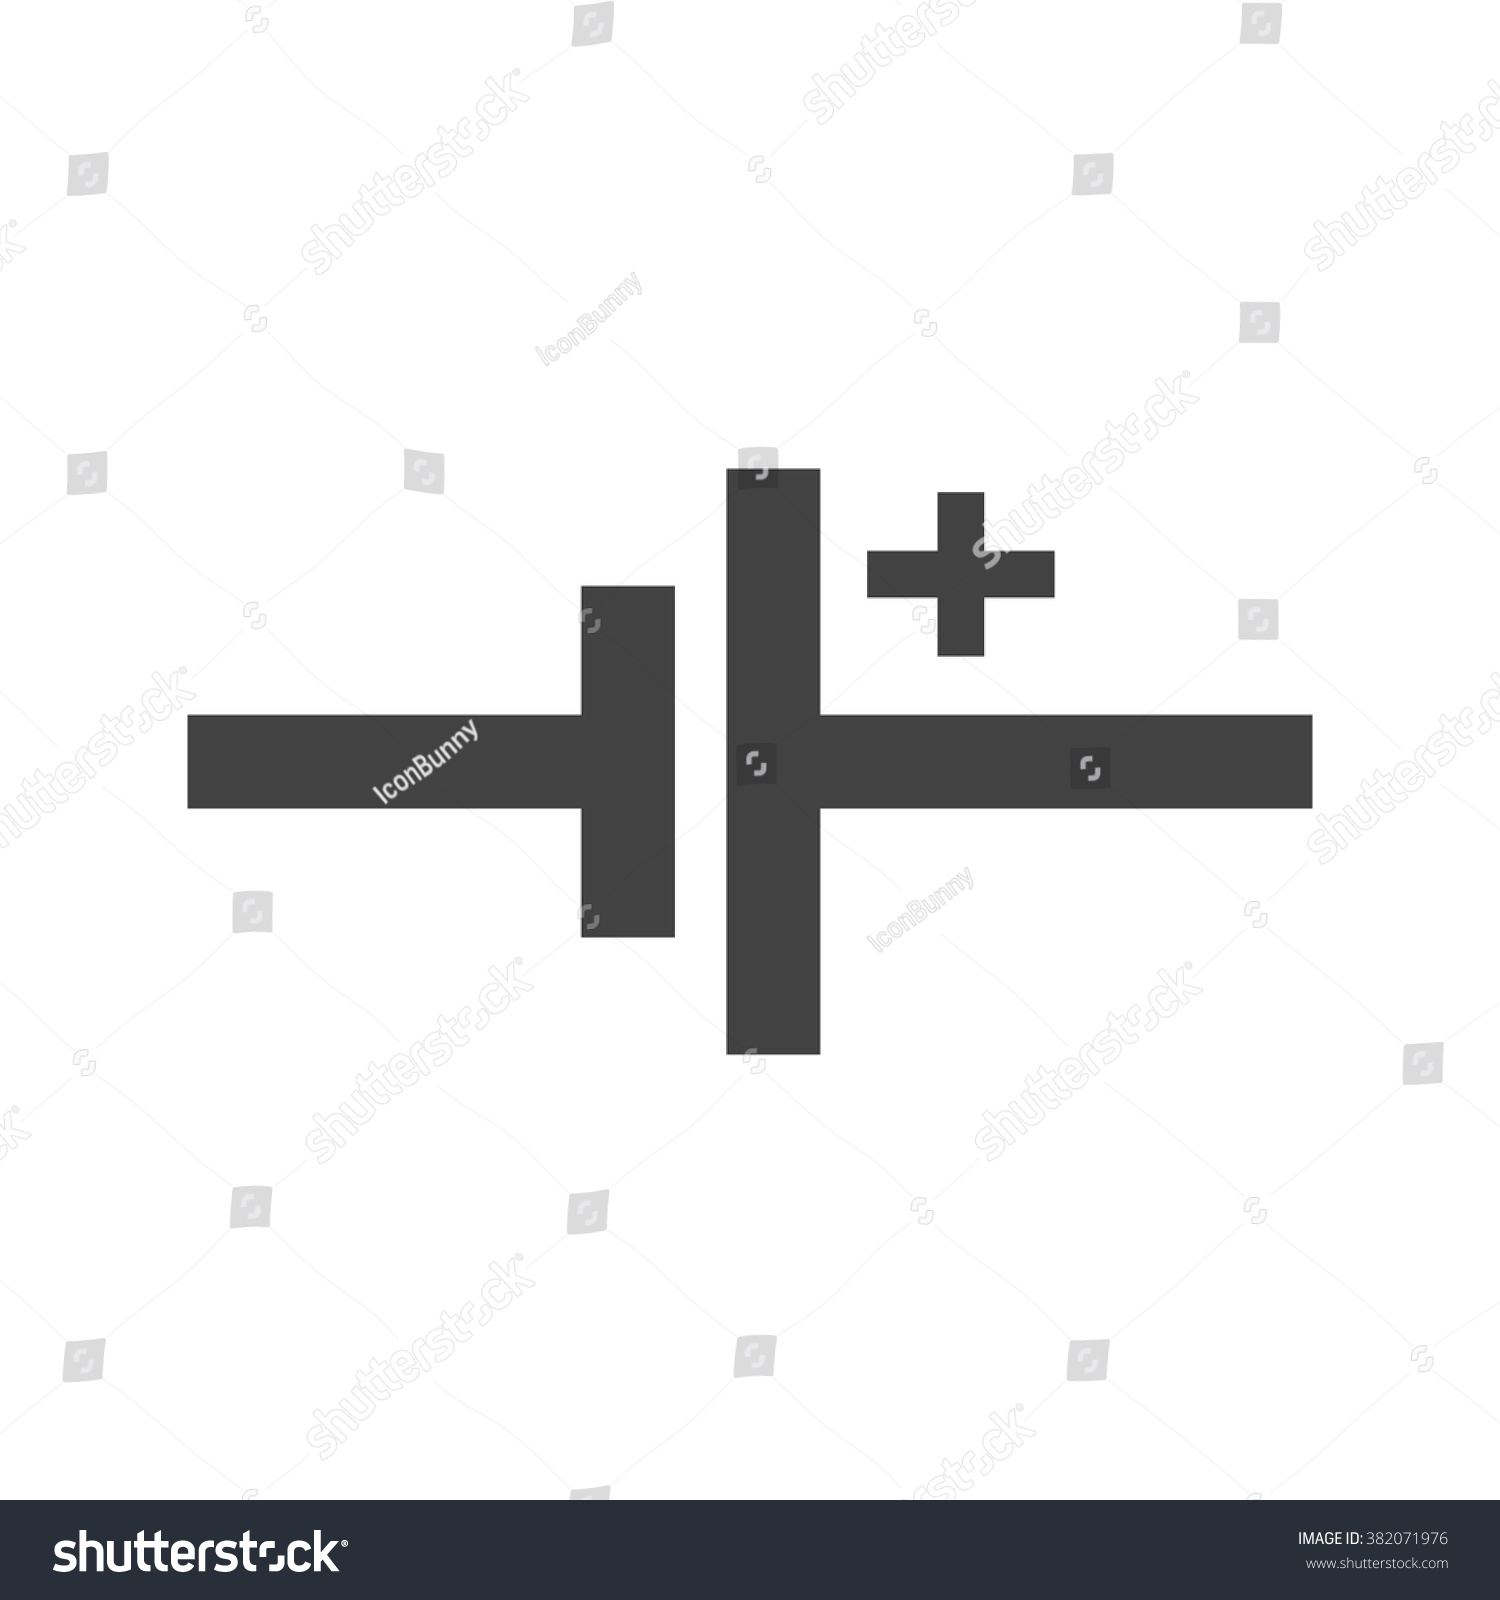 DC Voltage Source Stock Vector 382071976 - Shutterstock